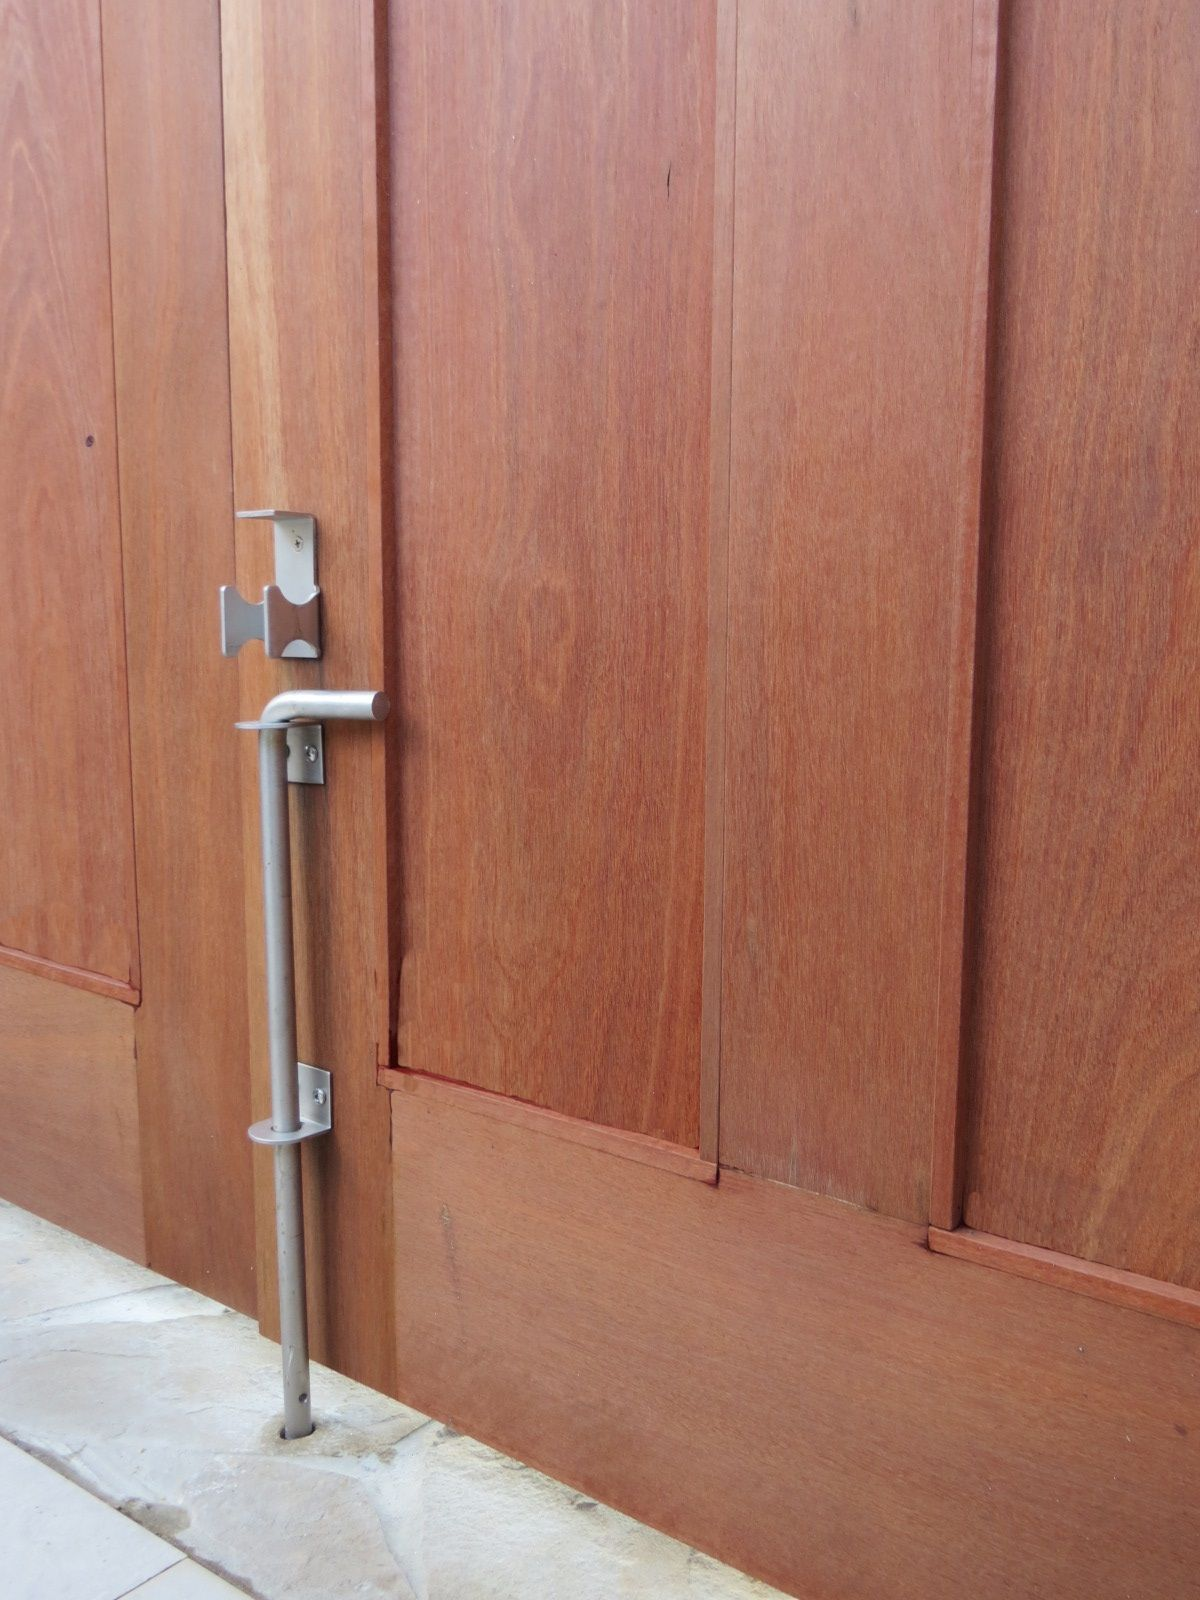 On Double Gates A Cane Bolt Can Be Used To Hold Open